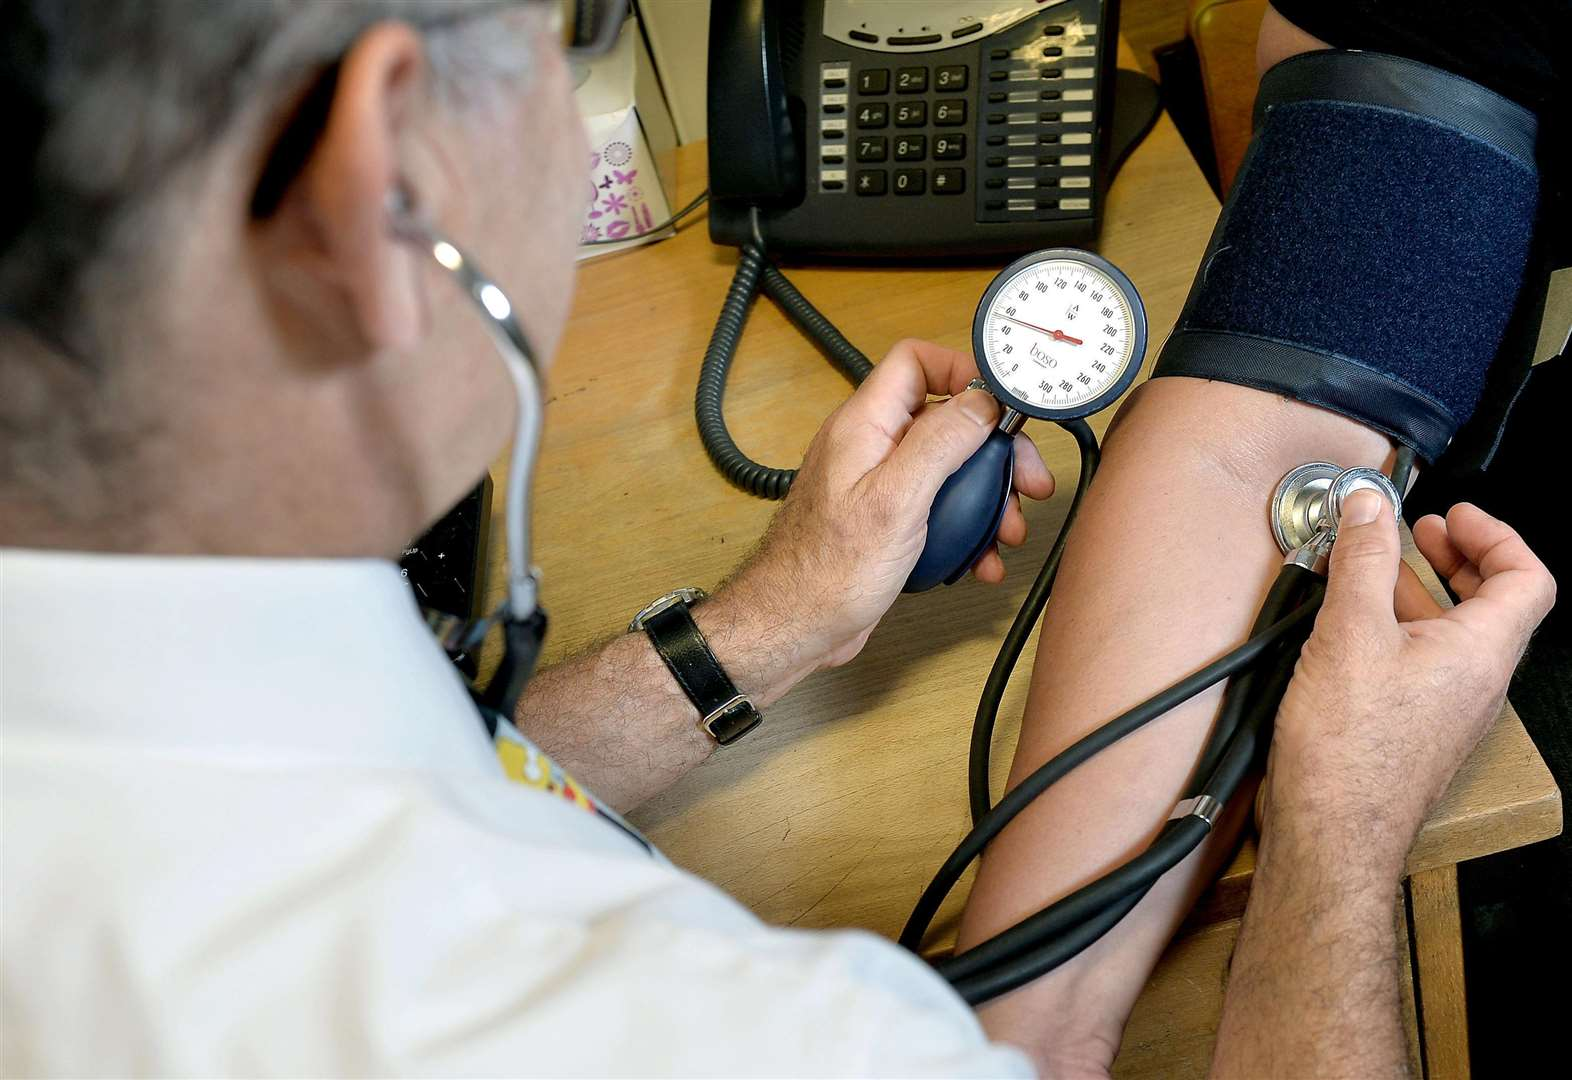 GPs receiving funding for non-existent 'ghost' patients in Cambridgeshire and Peterborough